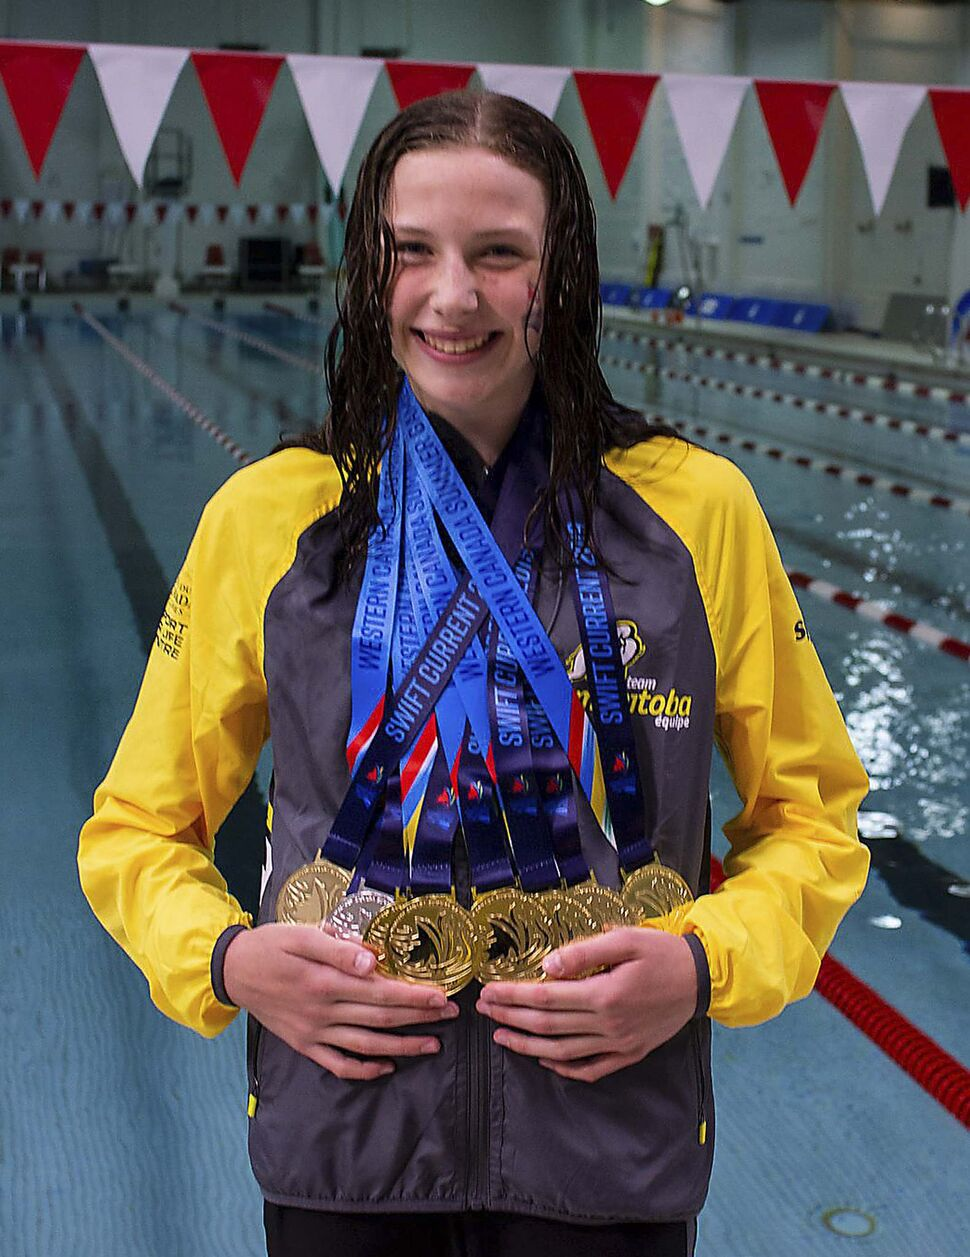 Team Manitoba swimmer Mia West with her medals at the 2019 Western Canada Summer Games.